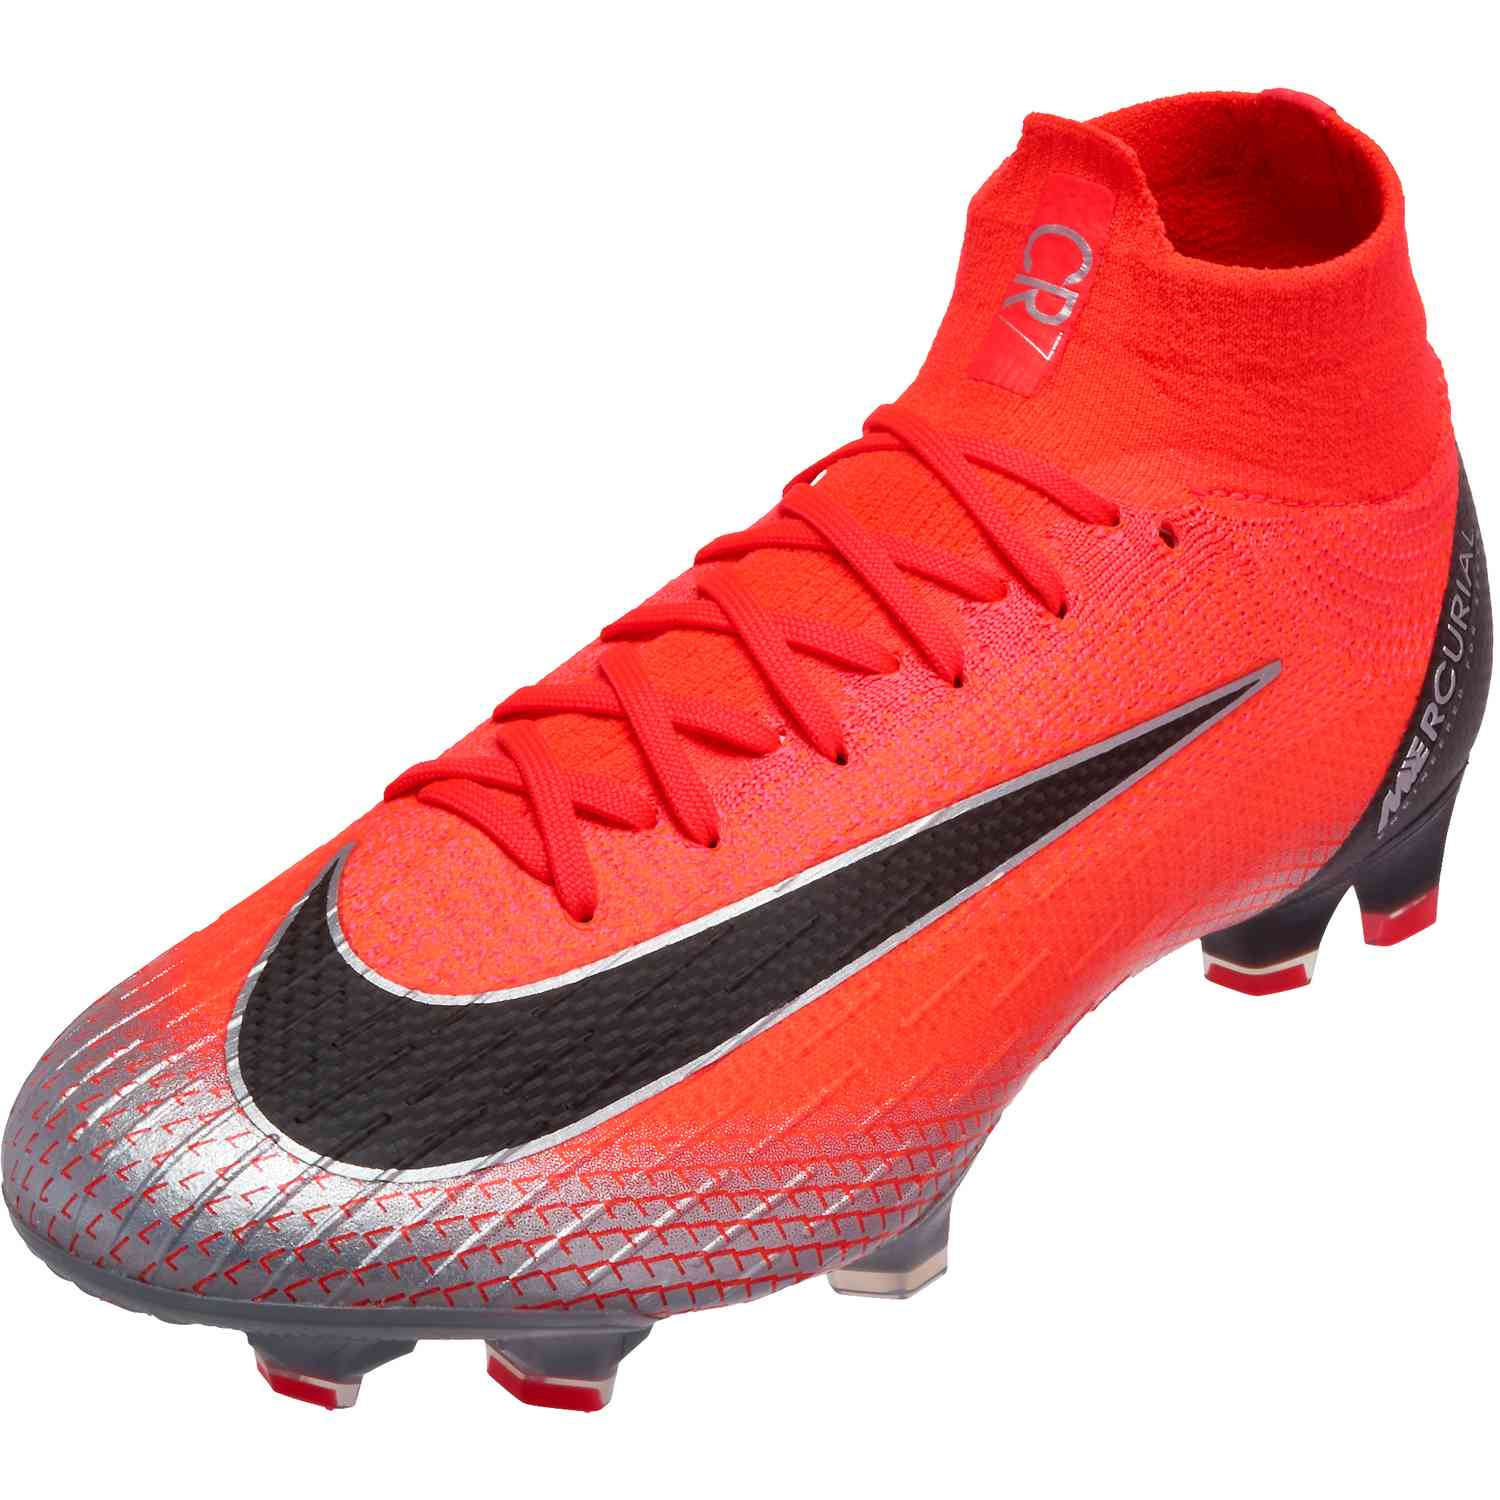 cc533e5ab746 Nike CR7 Mercurial Superfly Elite - Chapter 7 - SoccerPro.com